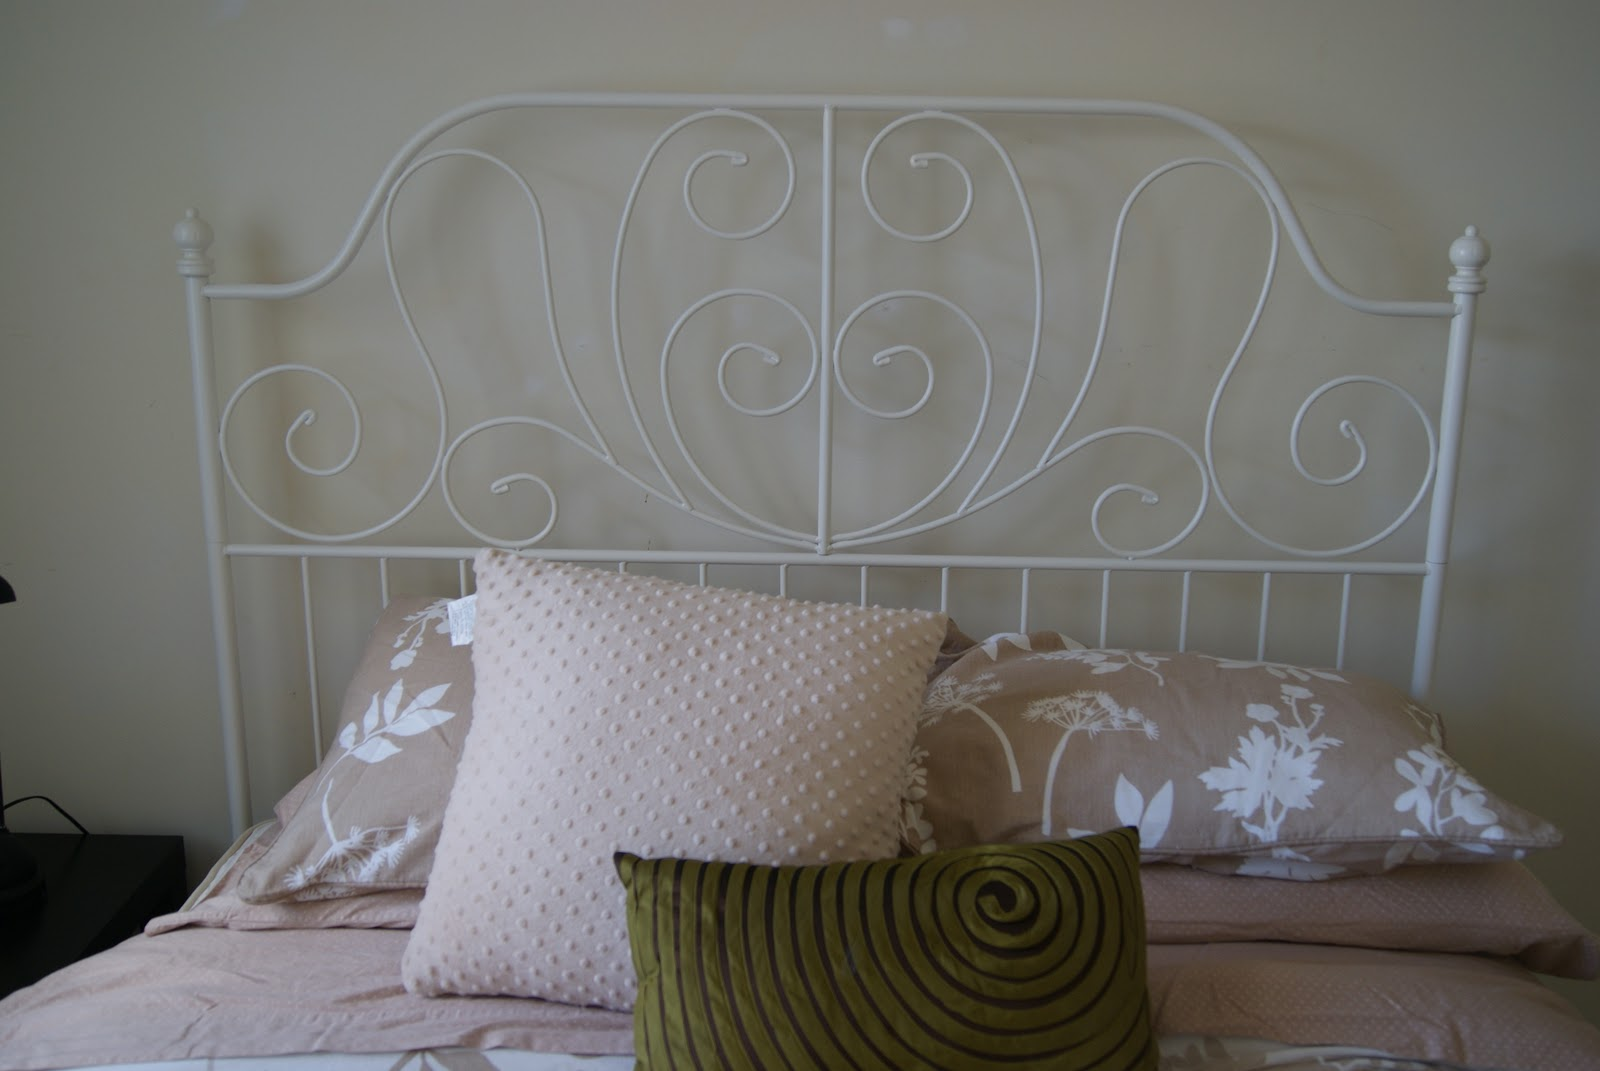 Headboards Ikea | Ikea Headboard King | Ikea Headboard with Storage